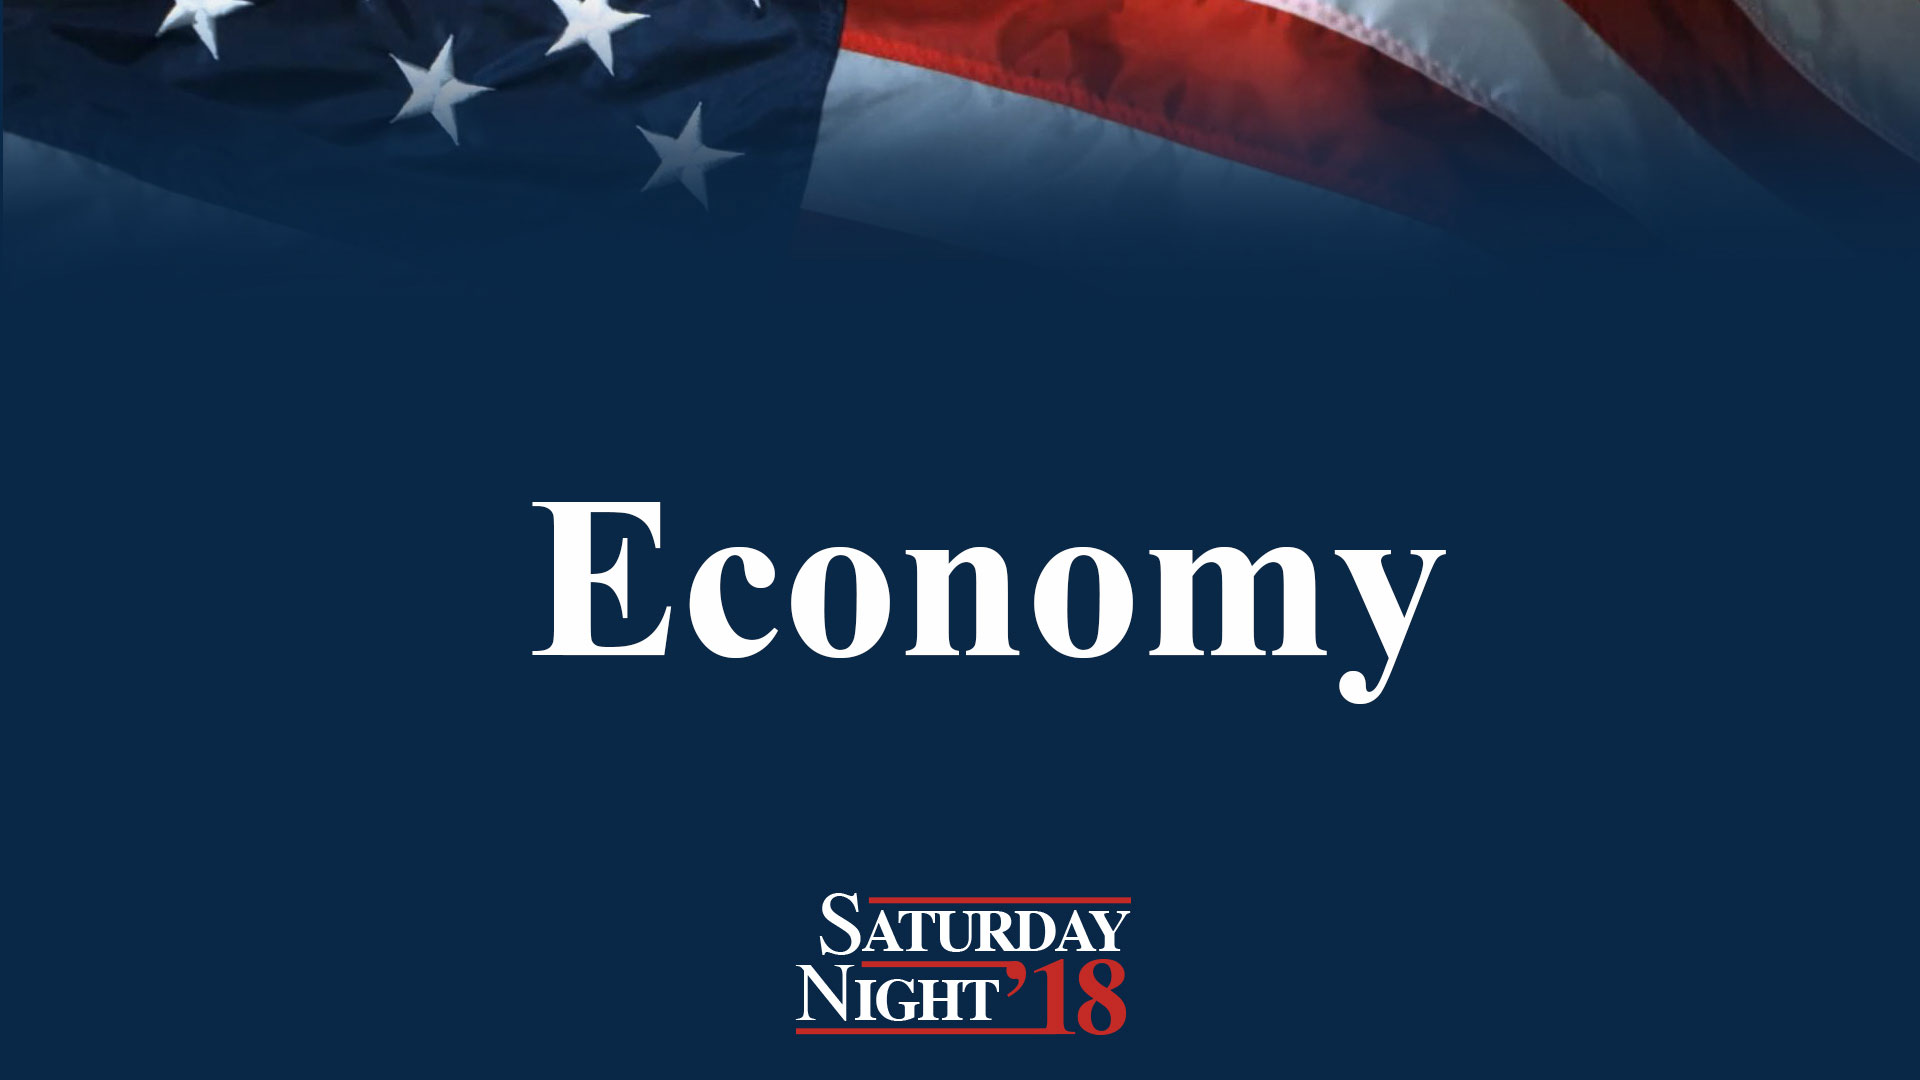 Economy - Sunday has had a monopoly on church services for years. Saturday night supporters believe that God can move in your life on Saturday too! In America, we believe that monopolies are bad.